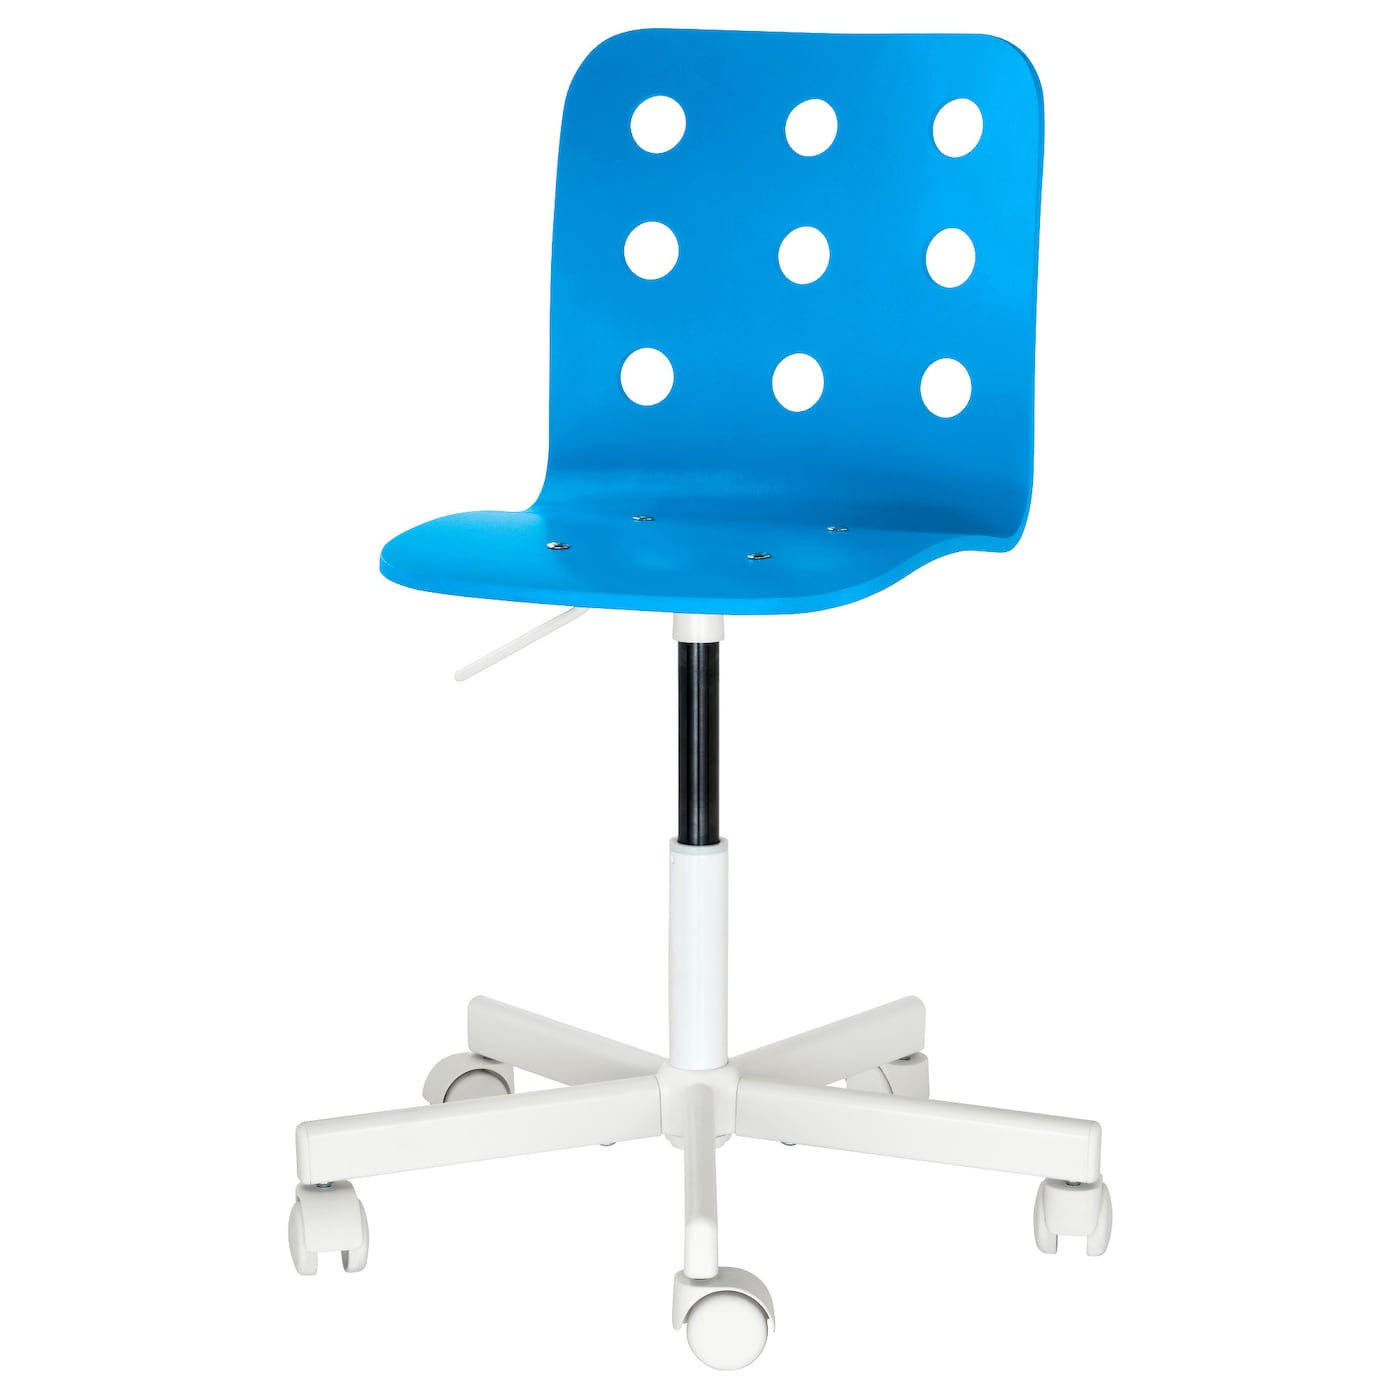 childrens office chair child's desk ikea jules childrens desk chair you sit comfortably since the is adjustable in height childrens bluewhite